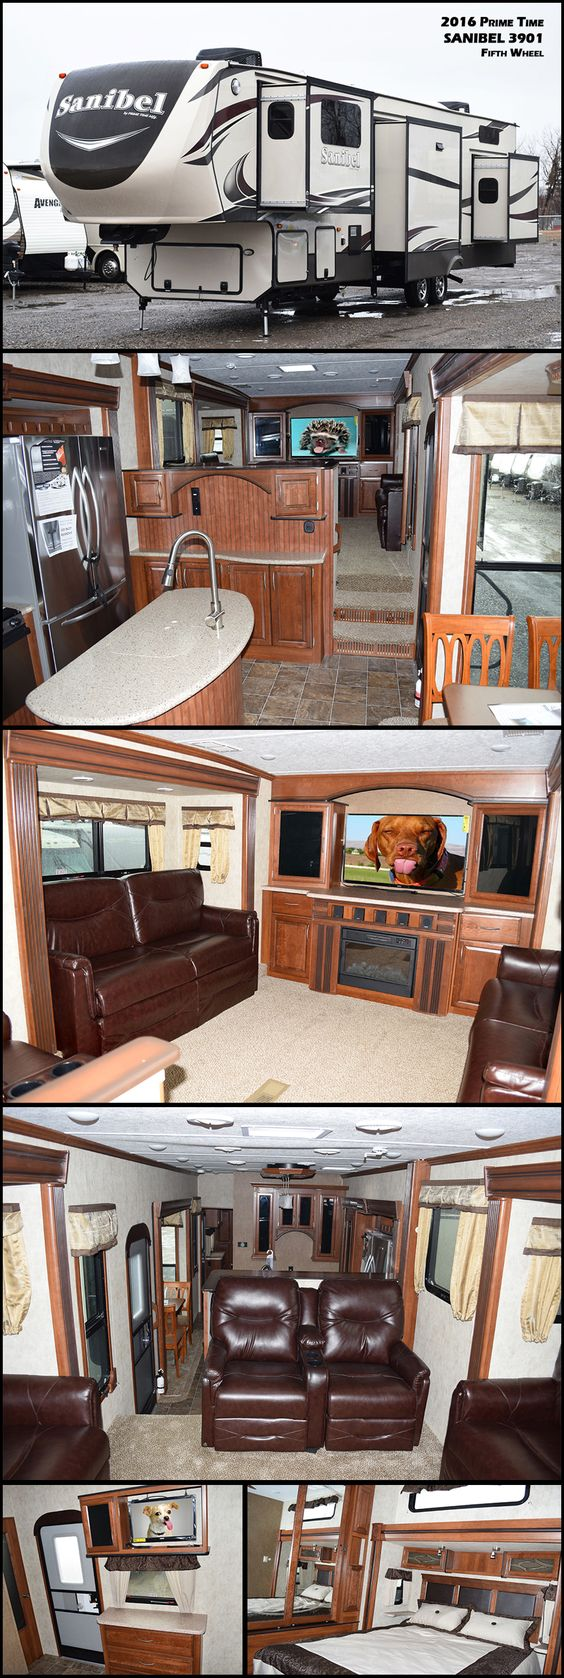 2016 open range 3x 397fbs front bathroom fifth wheel with 3 slides open range 3x fifth wheels pinterest open range rv and rv camping